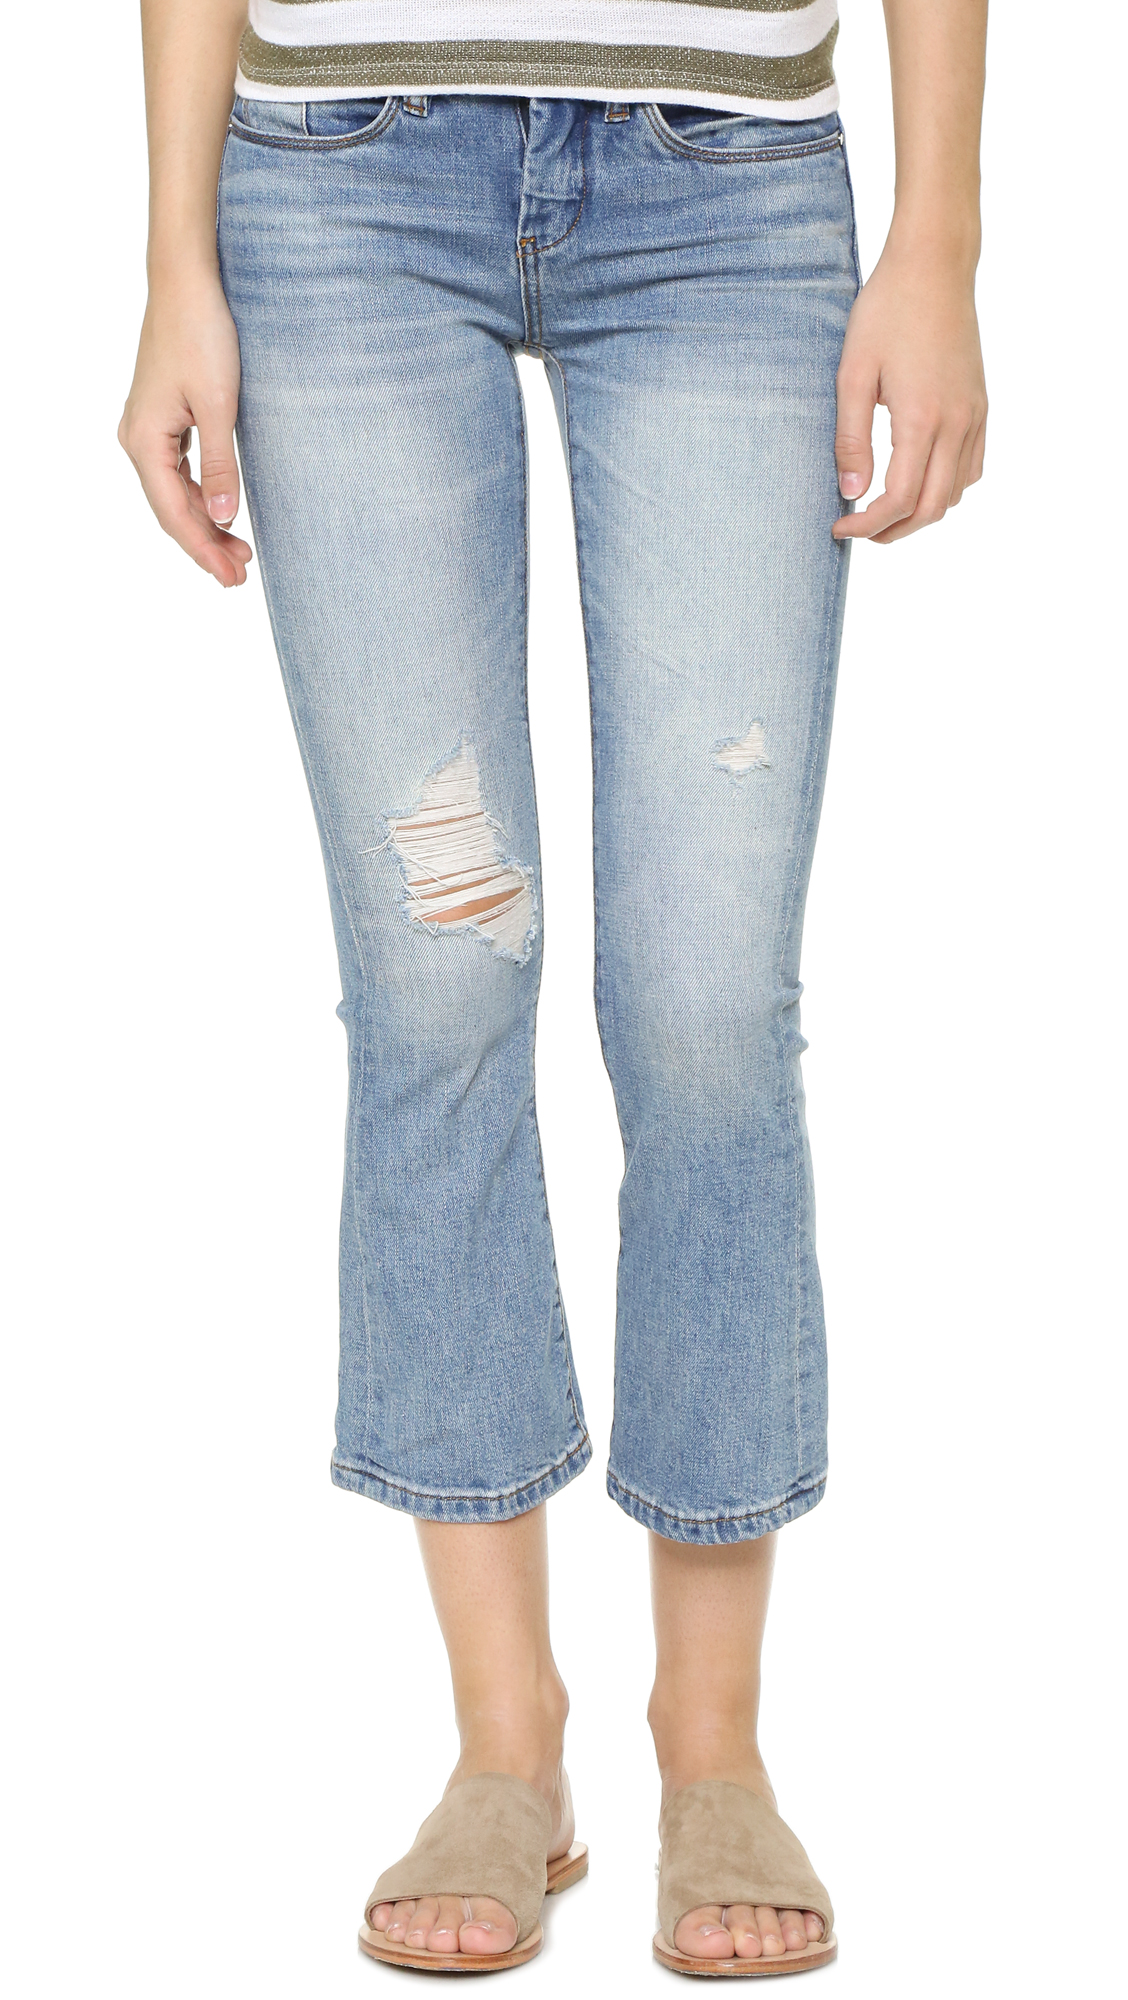 Feminine Blank Denim flares in faded, worn denim. Cropped silhouette with shredded detailing at the knees. 5 pocket styling. Button closure and zip fly. Fabric: Stretch denim. 98% cotton/2% spandex. Wash cold. Imported, China. Measurements Rise: 8in / 20.5cm